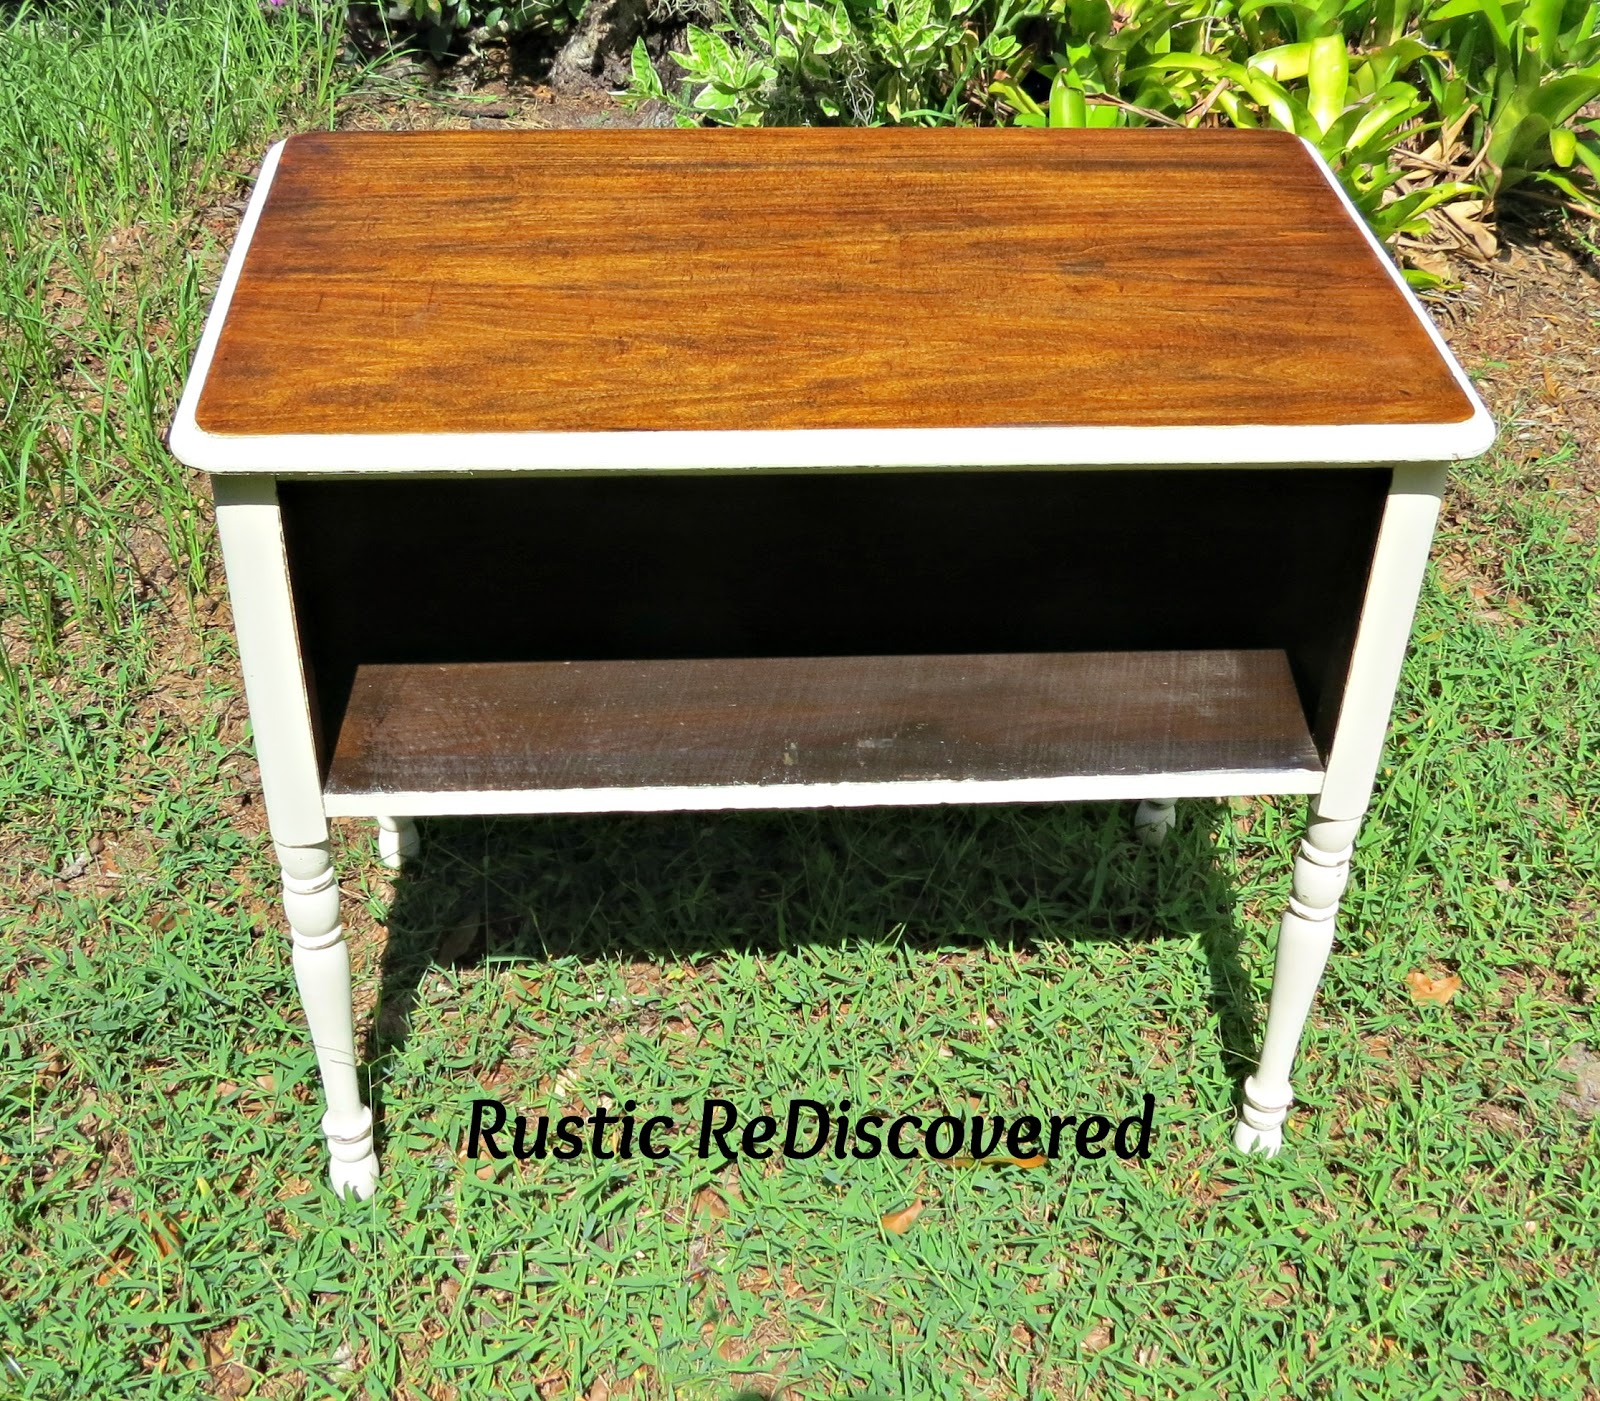 Rustic ReDiscovered Painted Hidden Storage Table